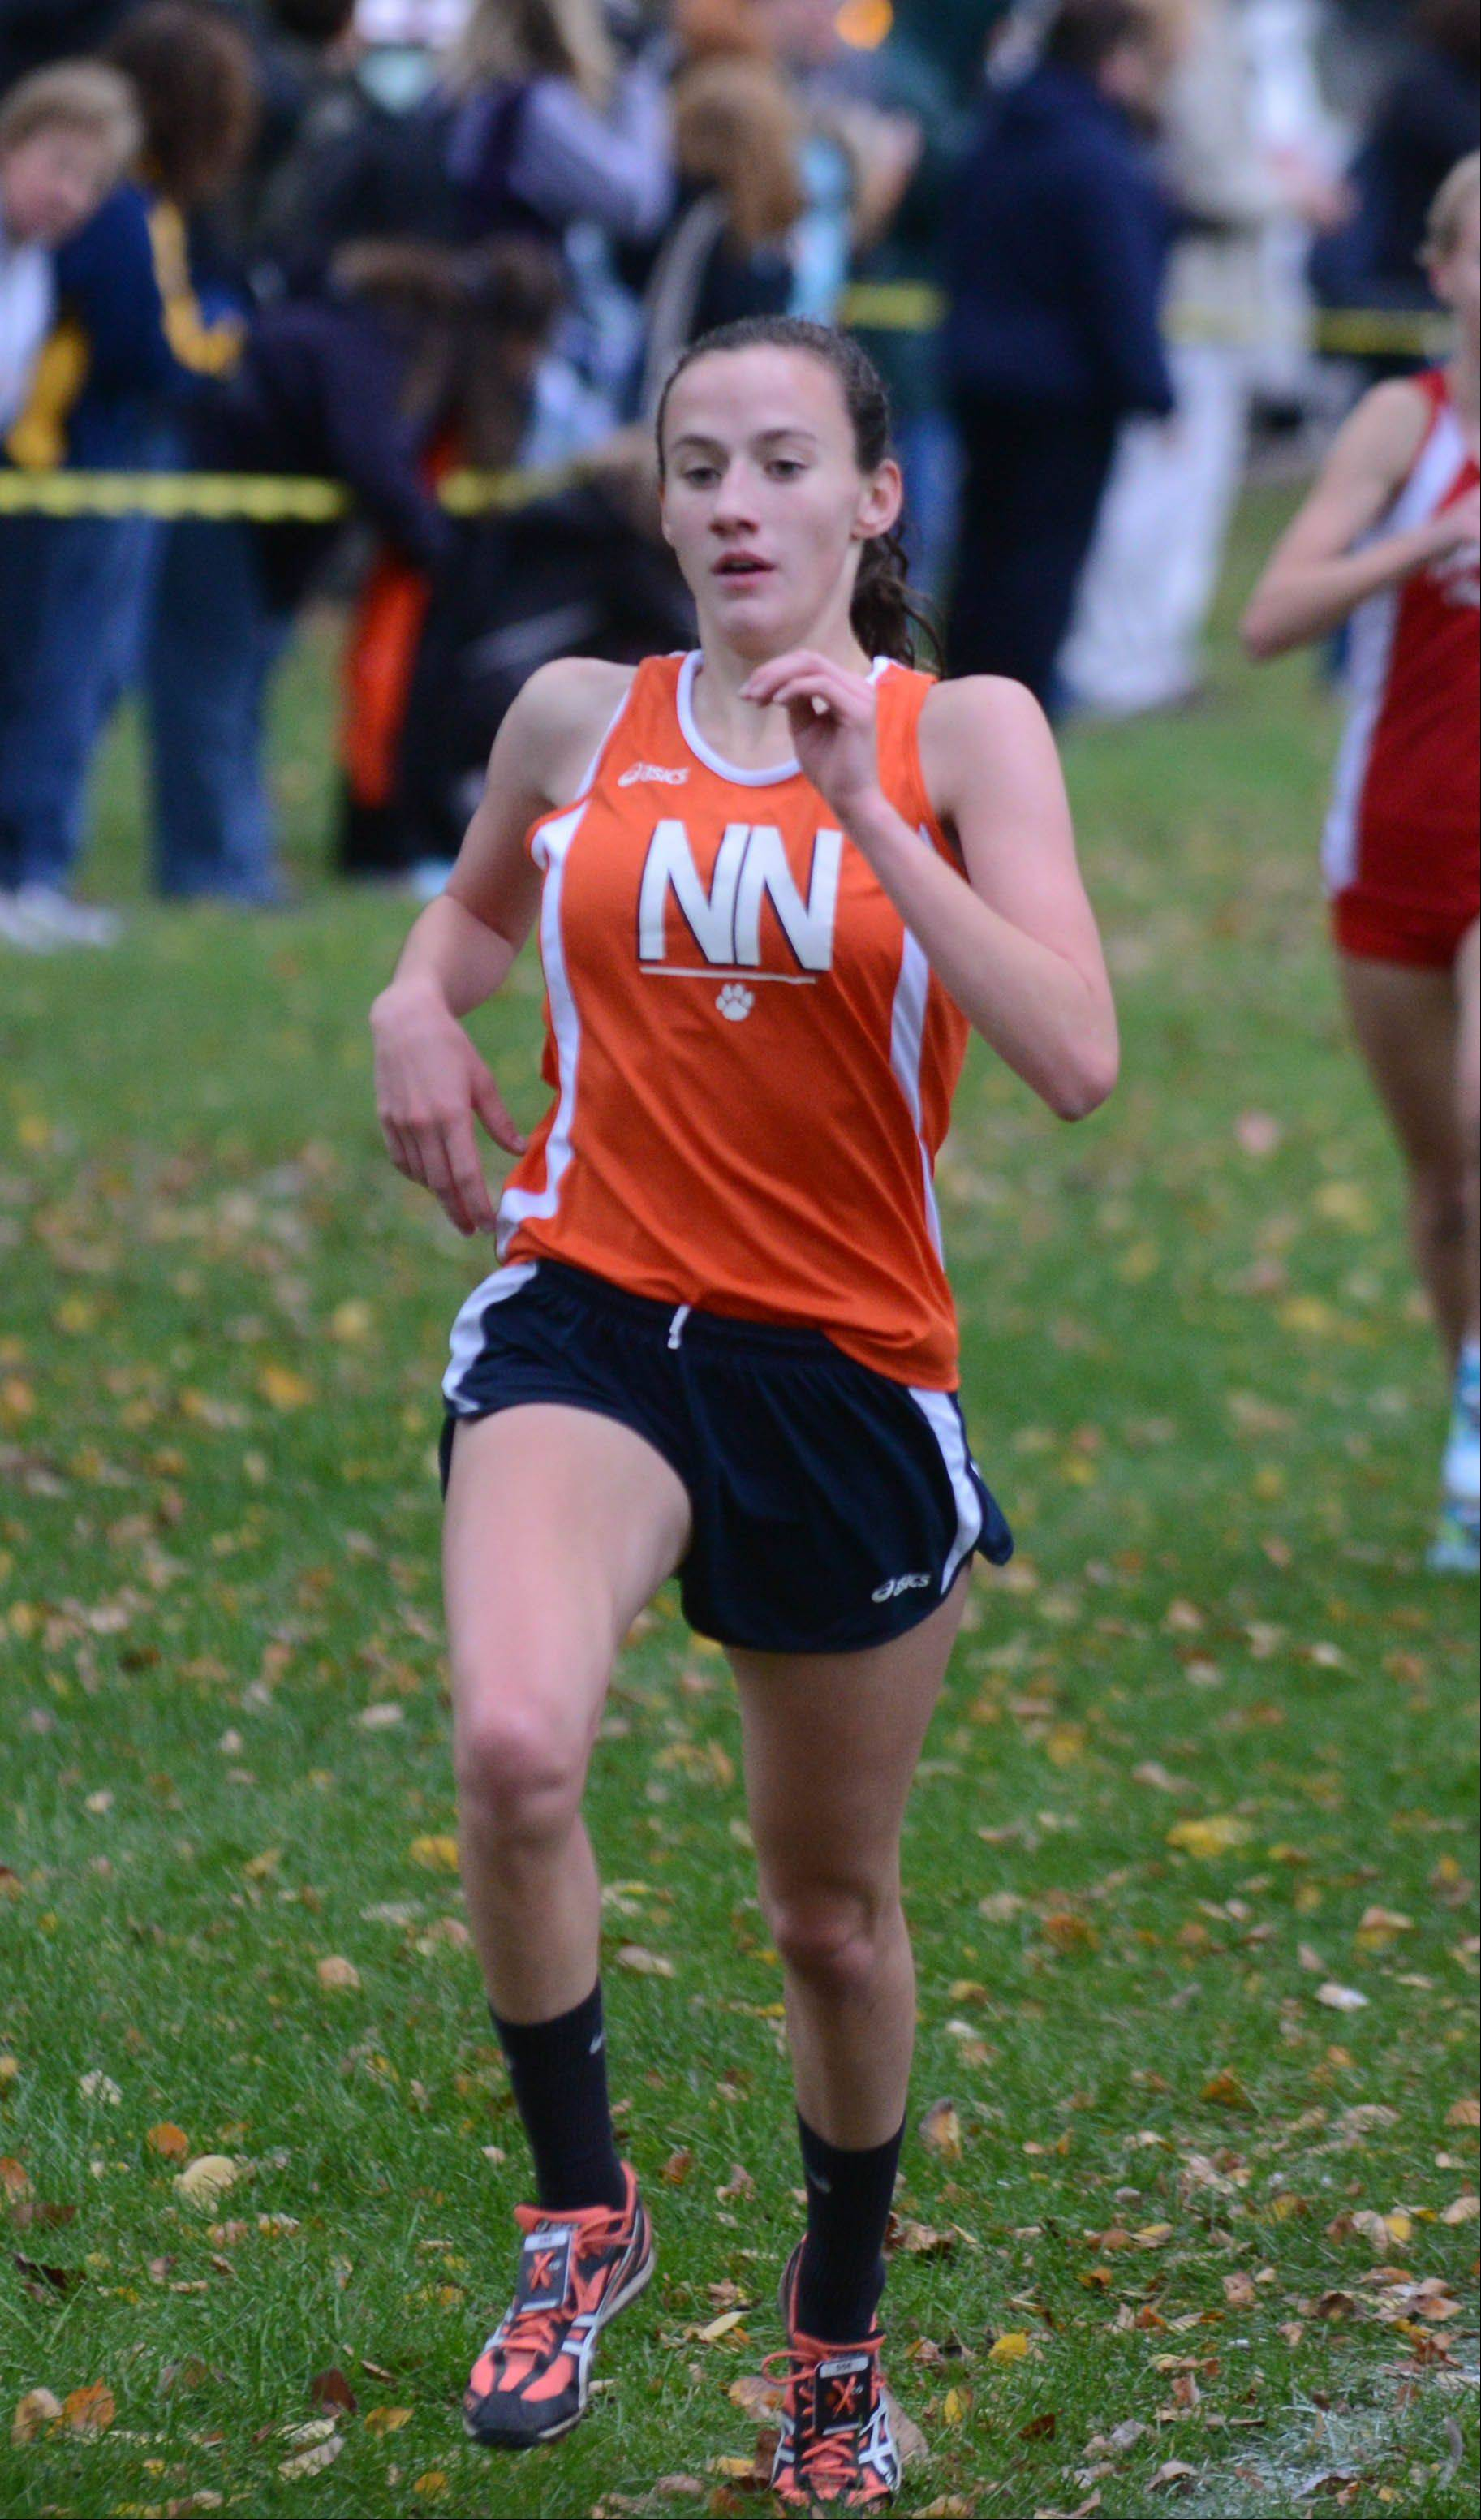 Katherine Shannon of Naperville North gets second at the DuPage Valley Conference boys and girls cross country meet in Lombard Friday.